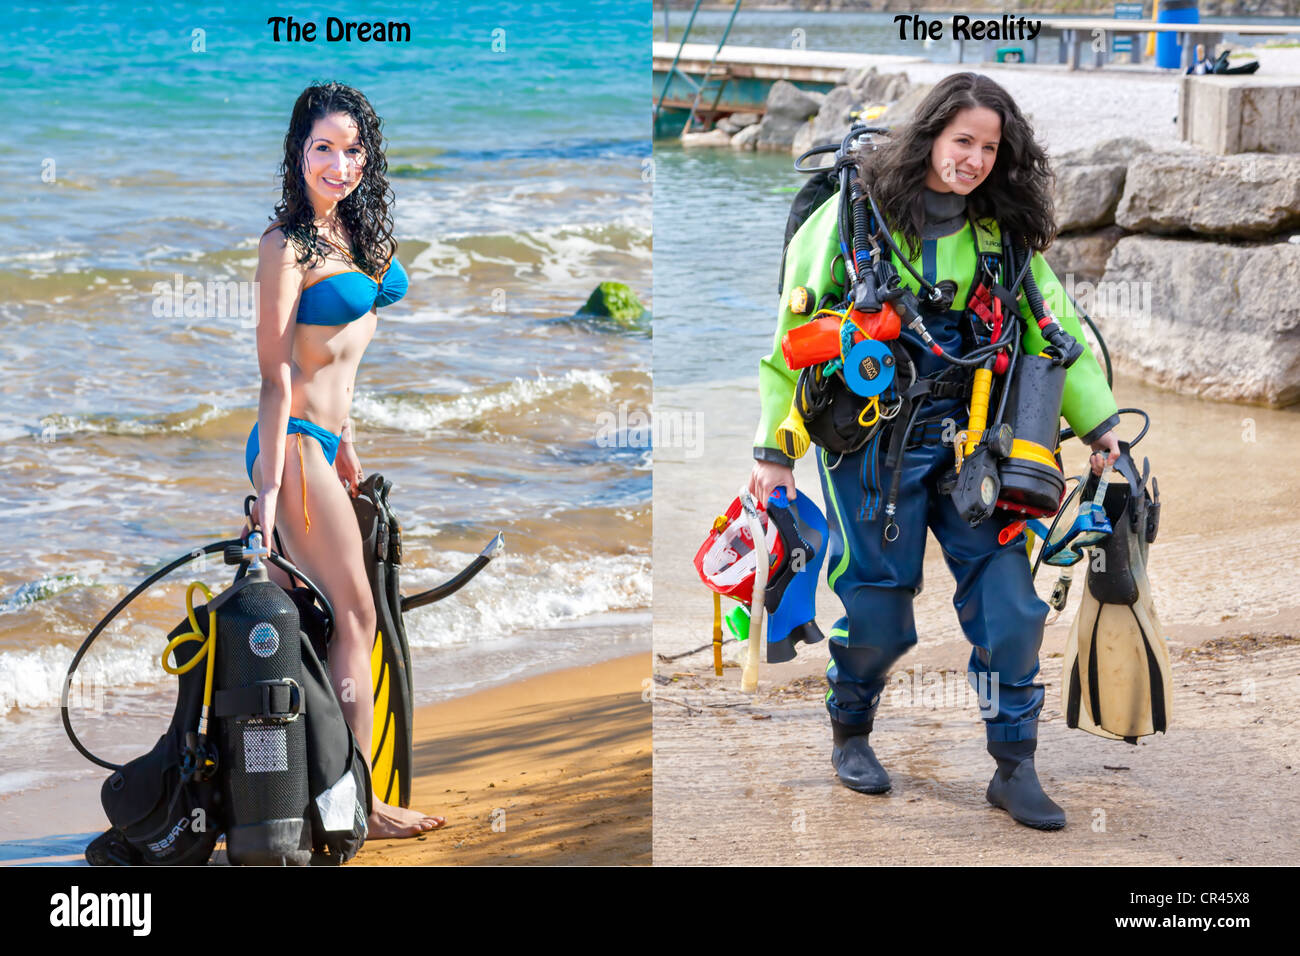 A beautiful girl shows the contrast between The Dream and The Reality of scuba diving expectations in a humorous Stock Photo